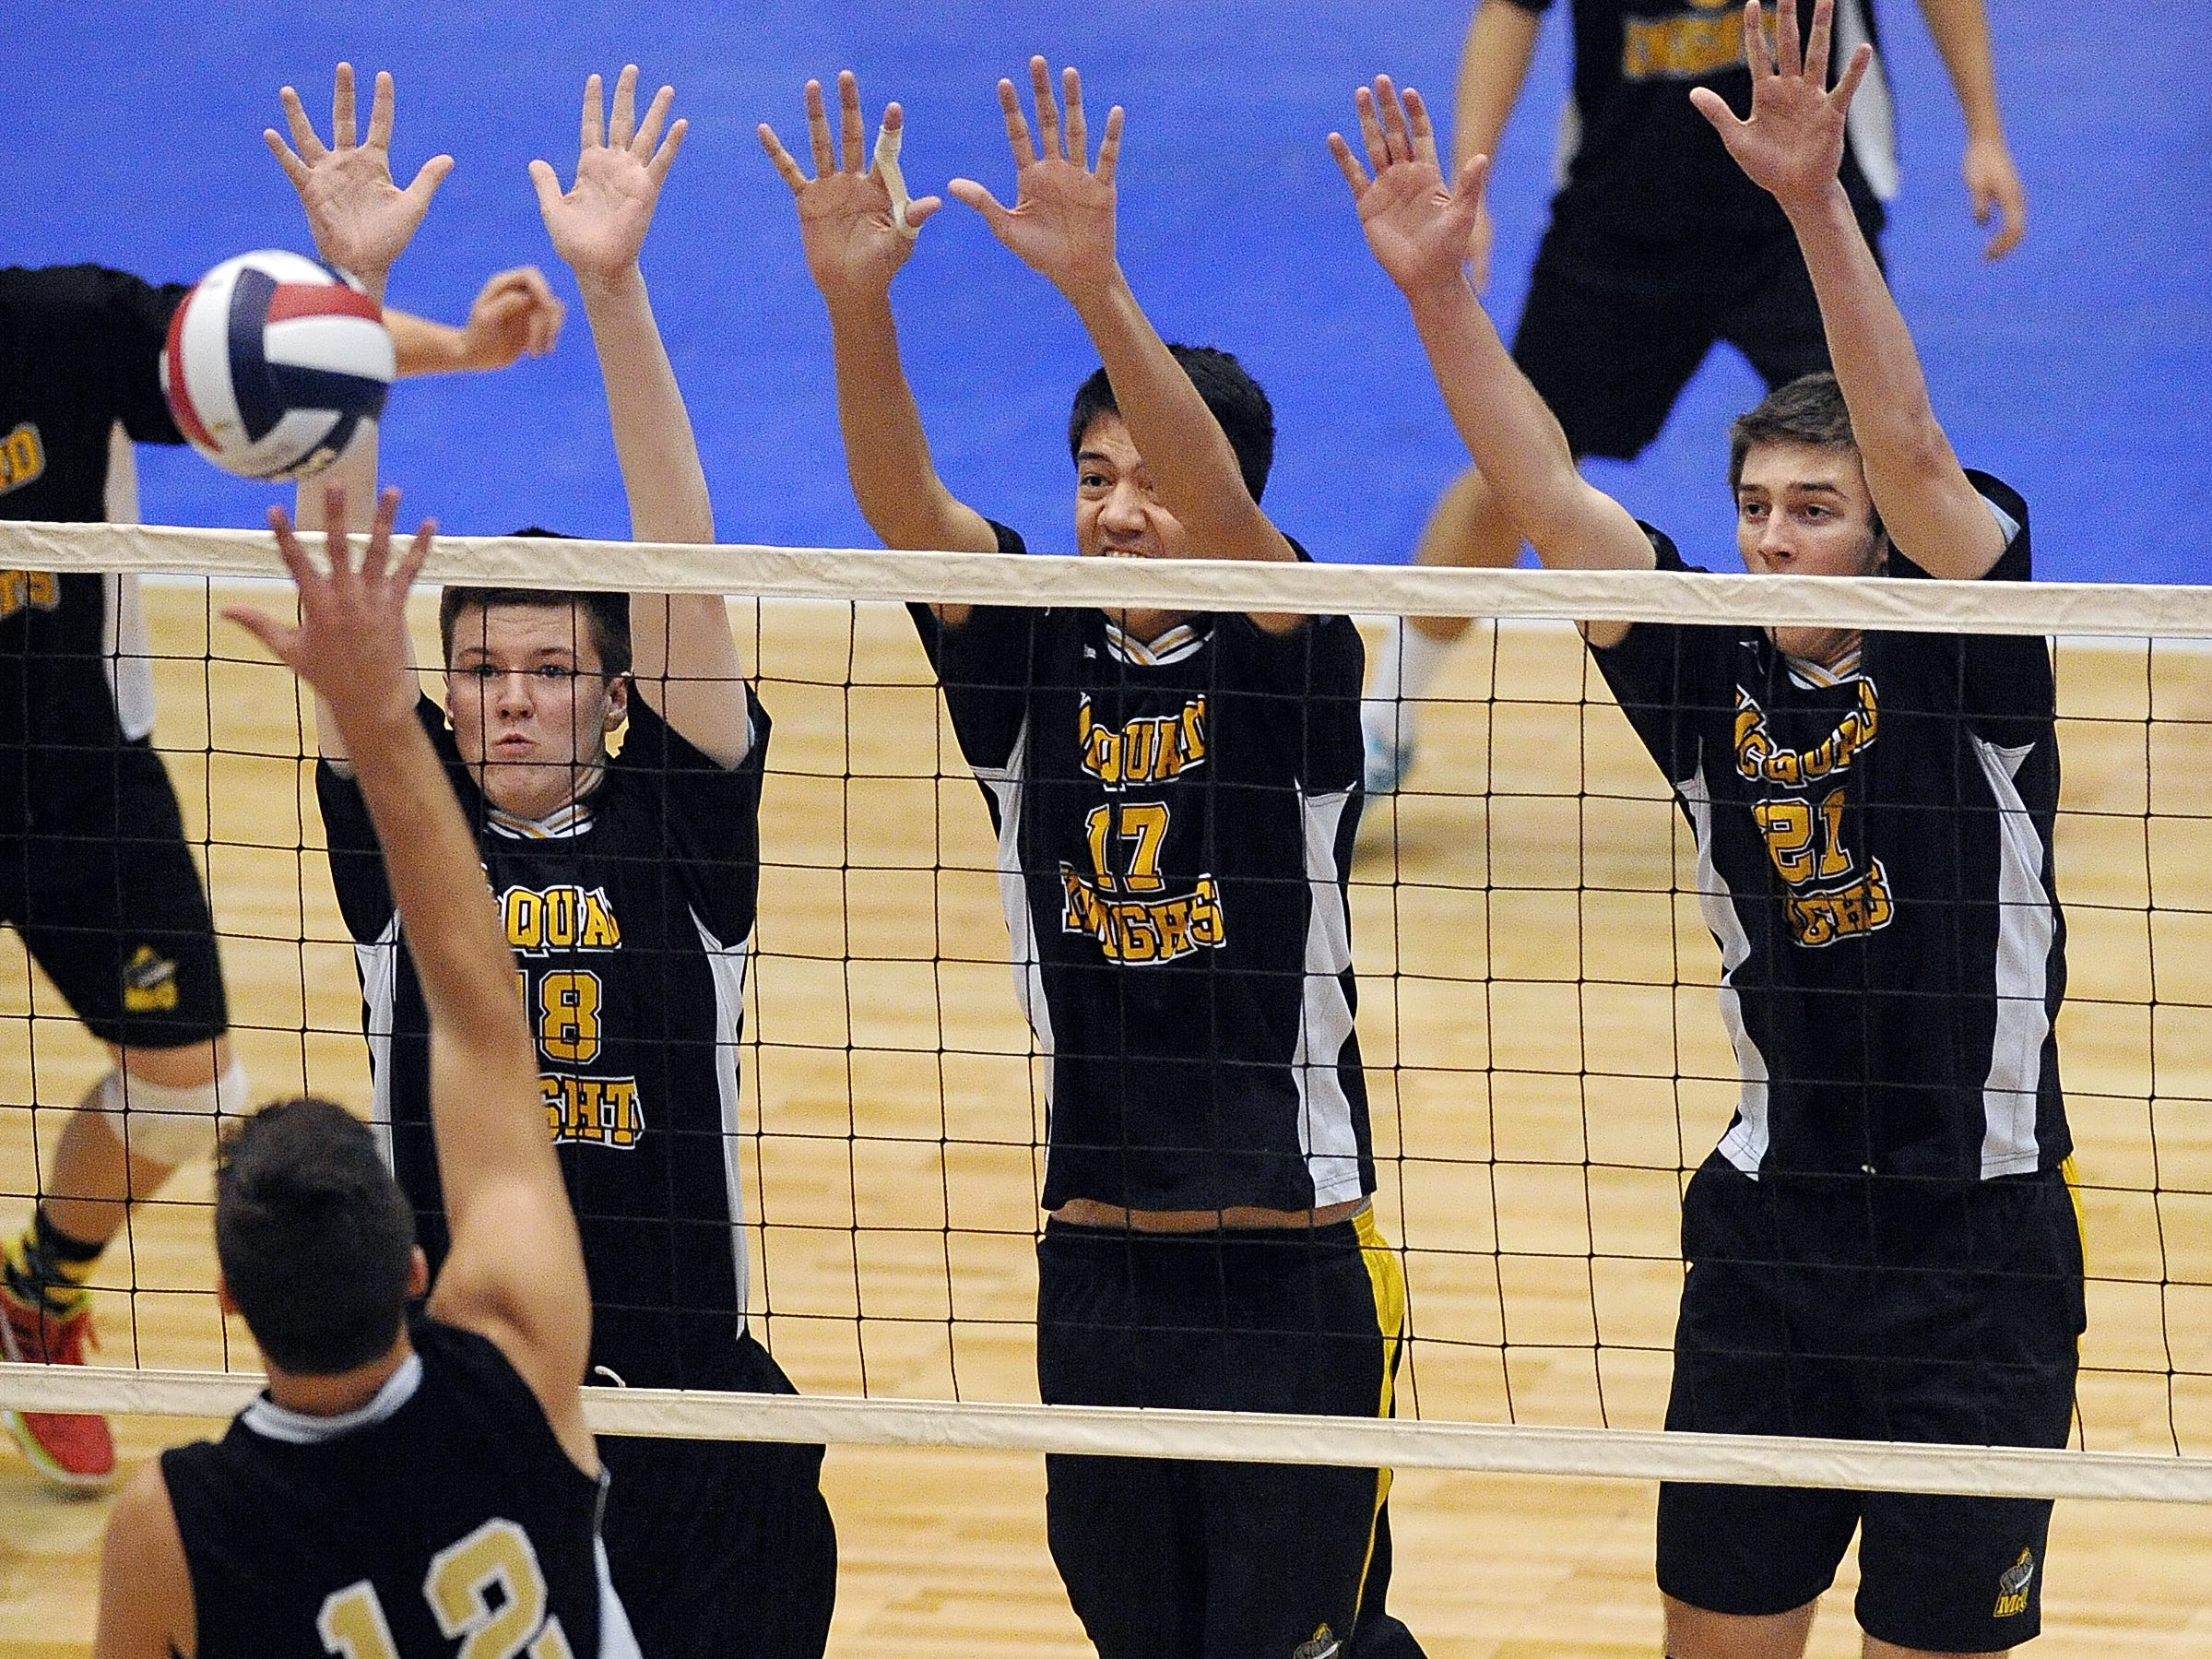 McQuaid's Erik Johnsson, right, Joseph Crosby and Ryan Dorgan set a triple block against Sachem North's Dylan Missry during the Division 1 final at the NYSPHSAA Boy's Volleyball Championships held at the Glens Falls Civic Center on Friday, November 11, 2014.  McQuaid lost the final to Sachem North-XI in four games (22-25, 22-25, 25-21, 18-25).